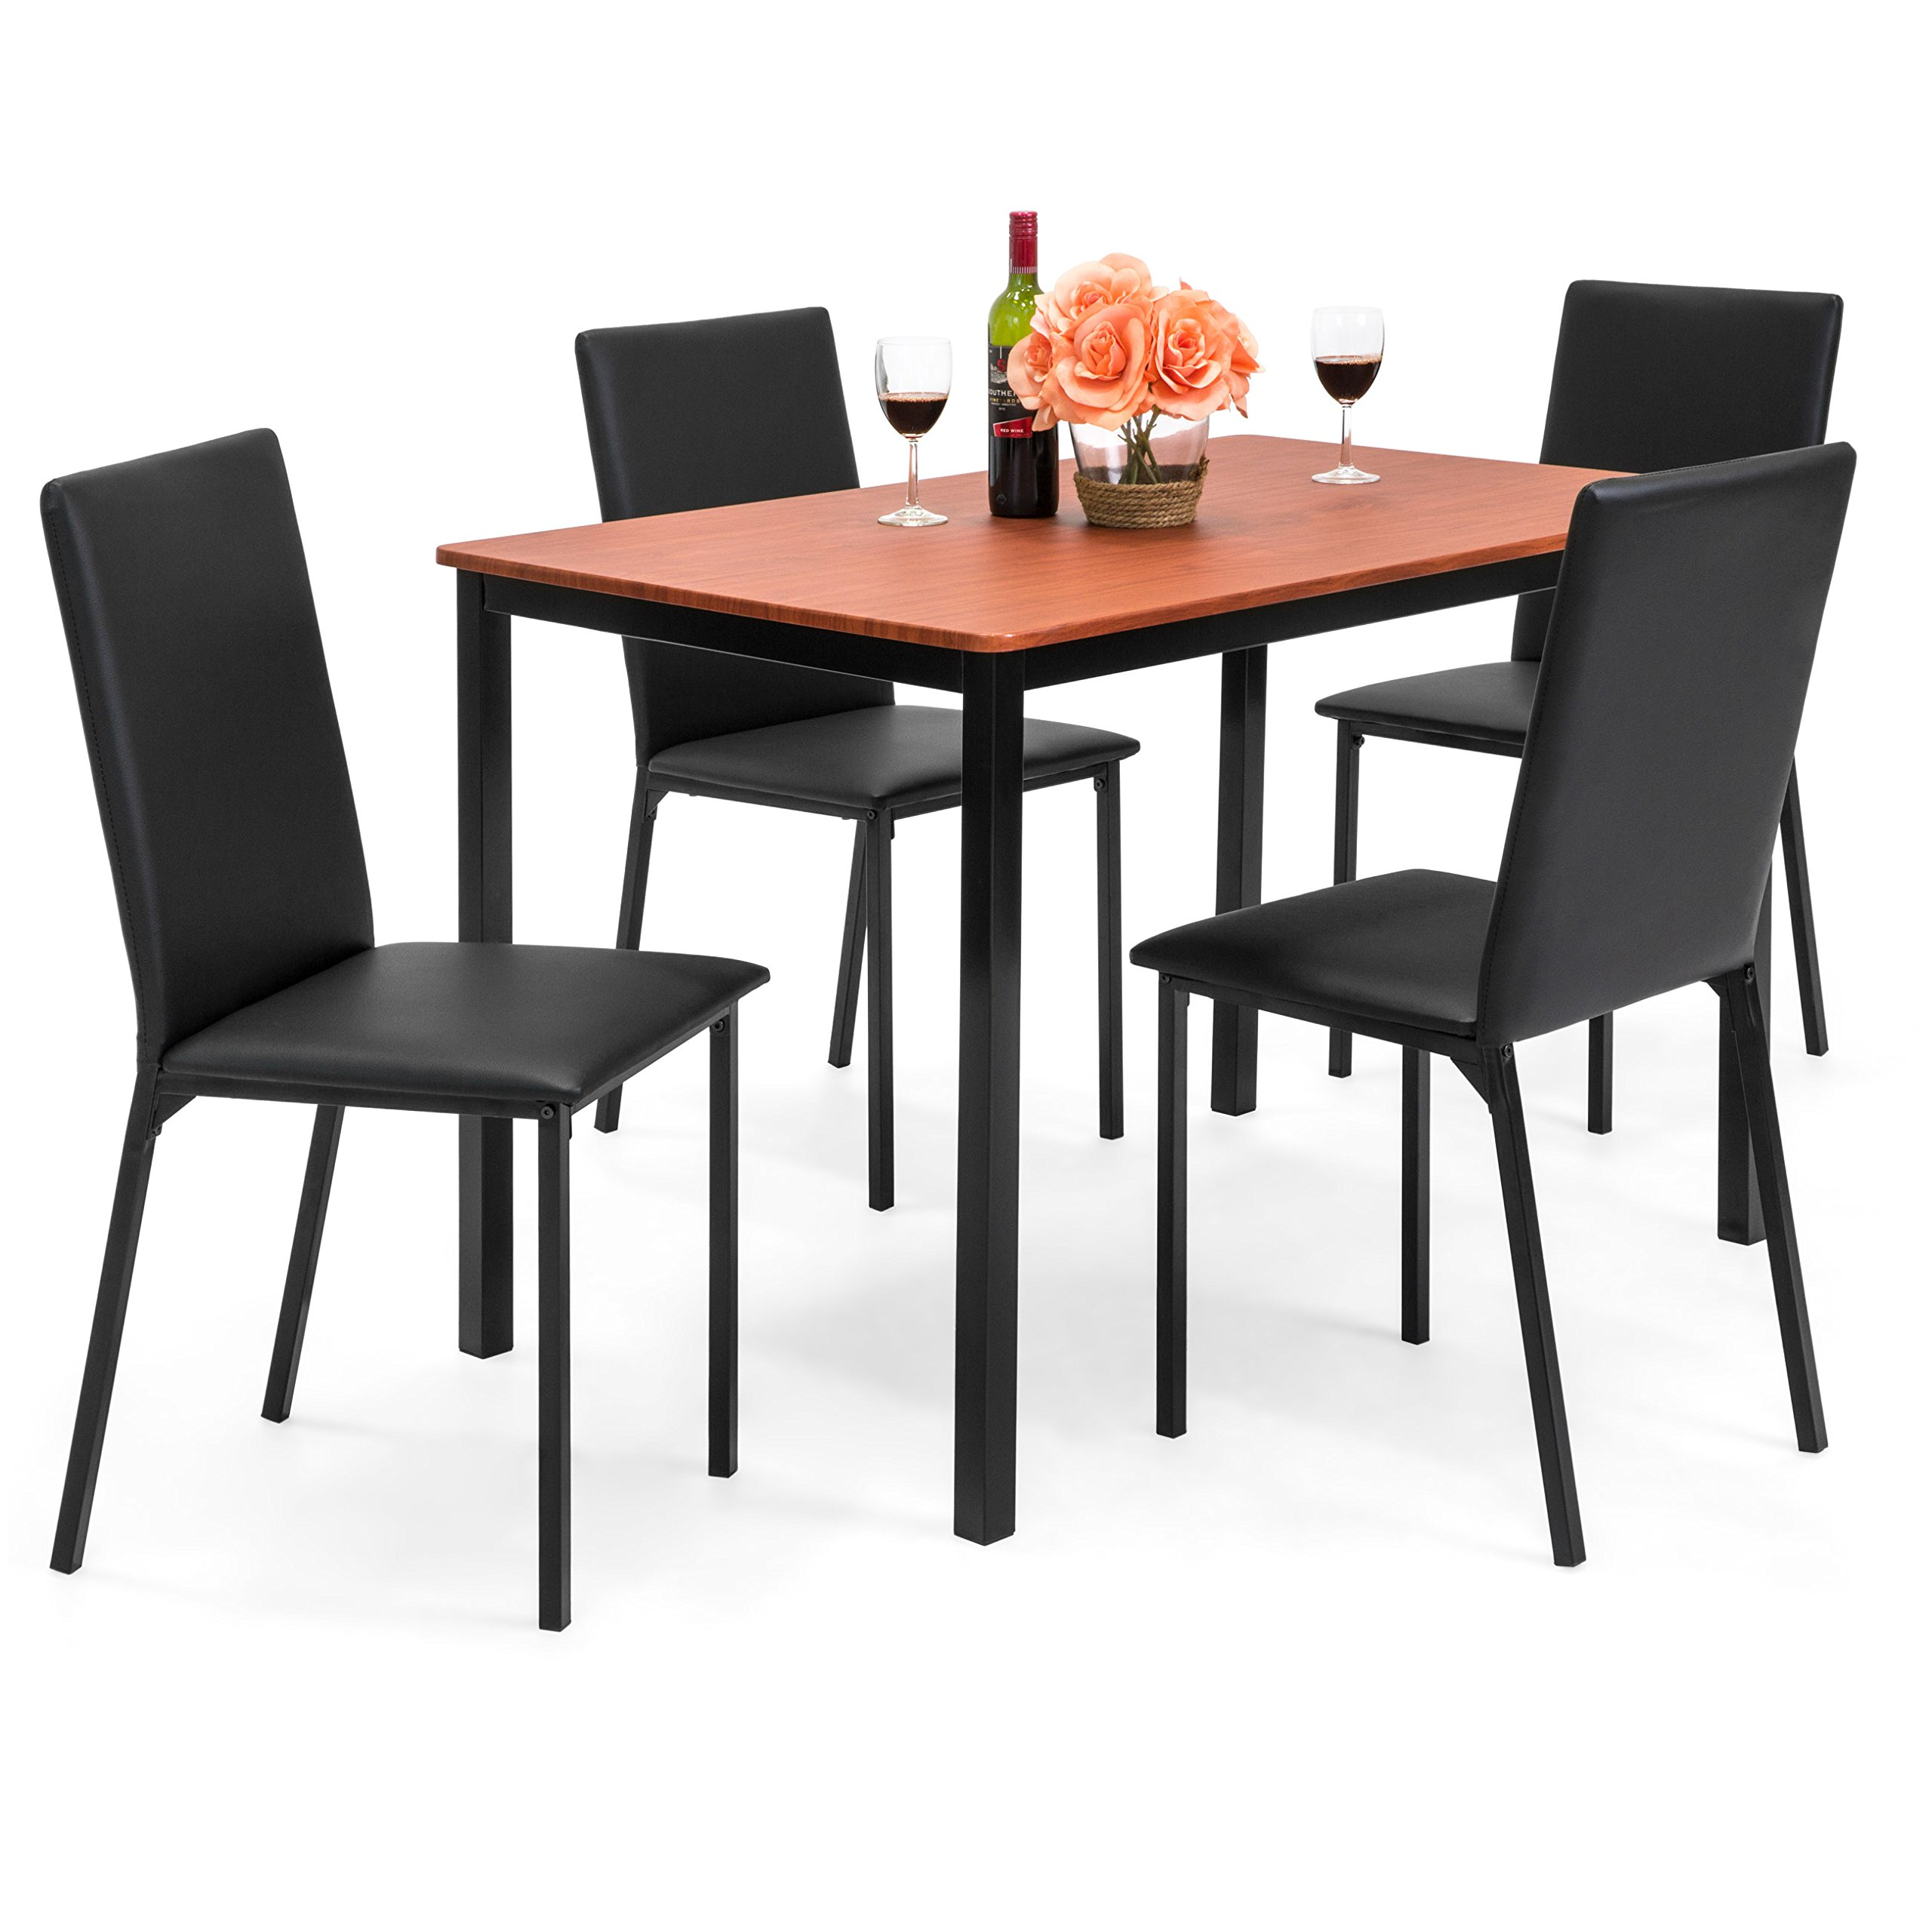 Best Choice Products Rectangle Dining Table Furniture Set w/ 4 Faux Leather Chairs, 5-Piece, Black by Best Choice Products